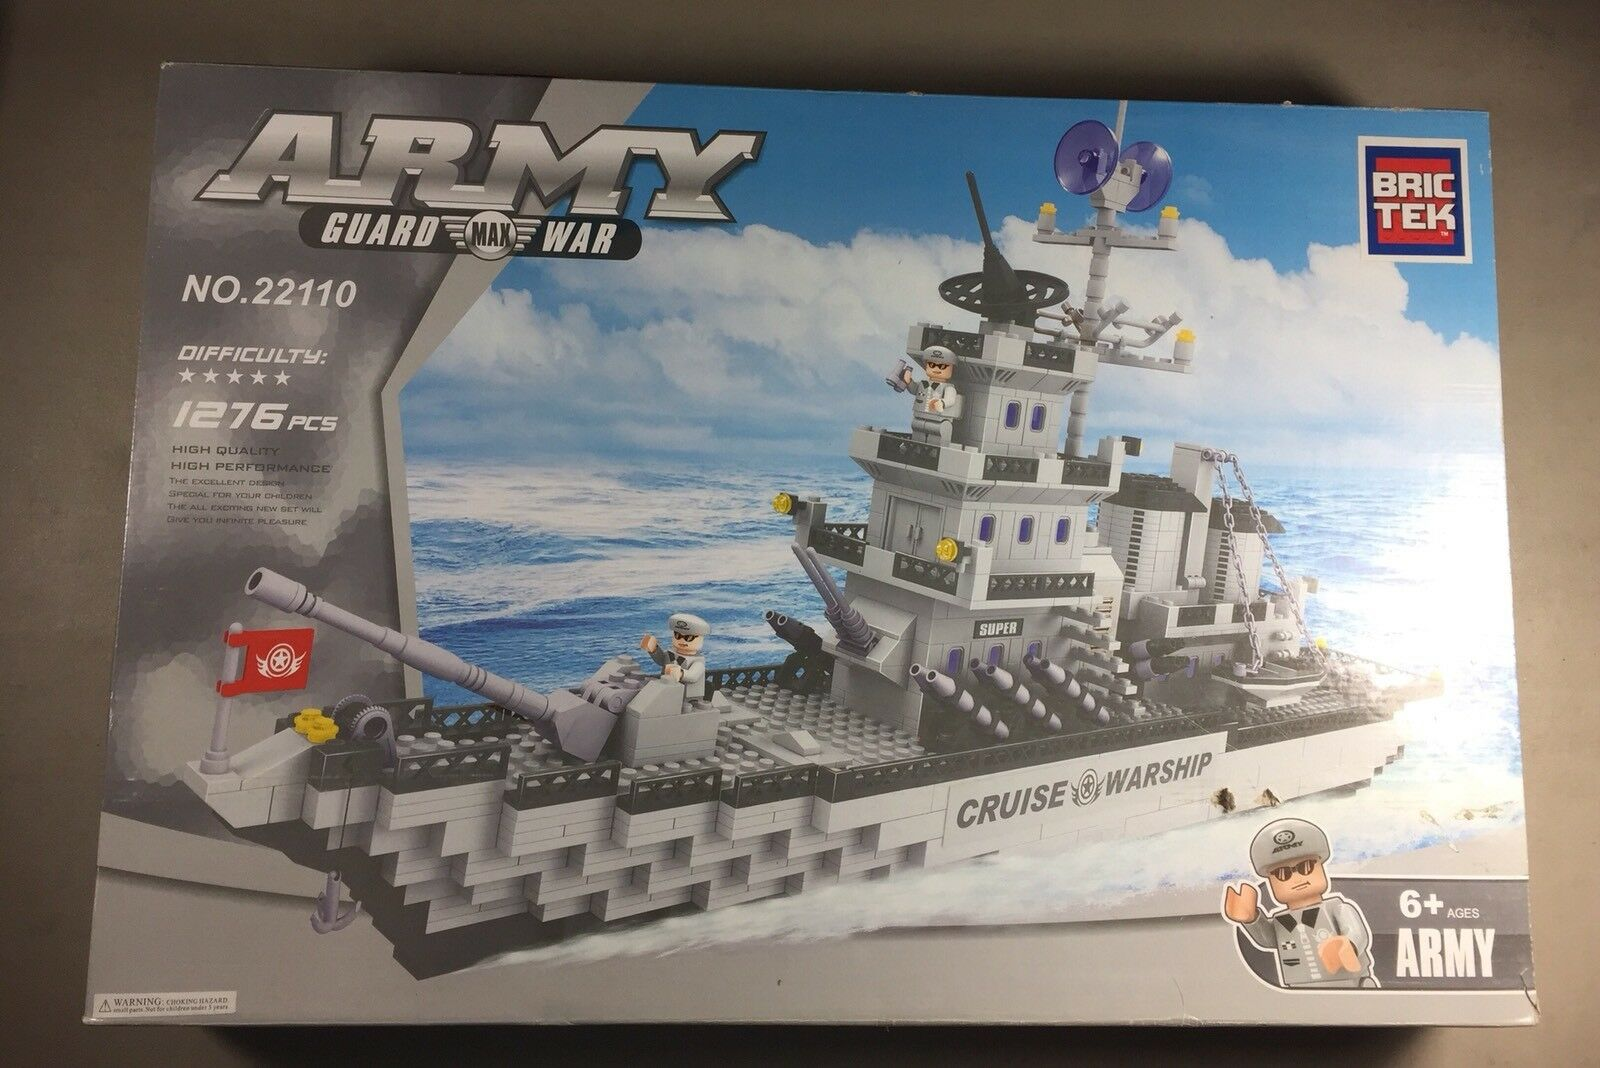 Bric Tek Brictek Army Navy Corps War Ship 600 Pcs 22802 Brand New Never Built